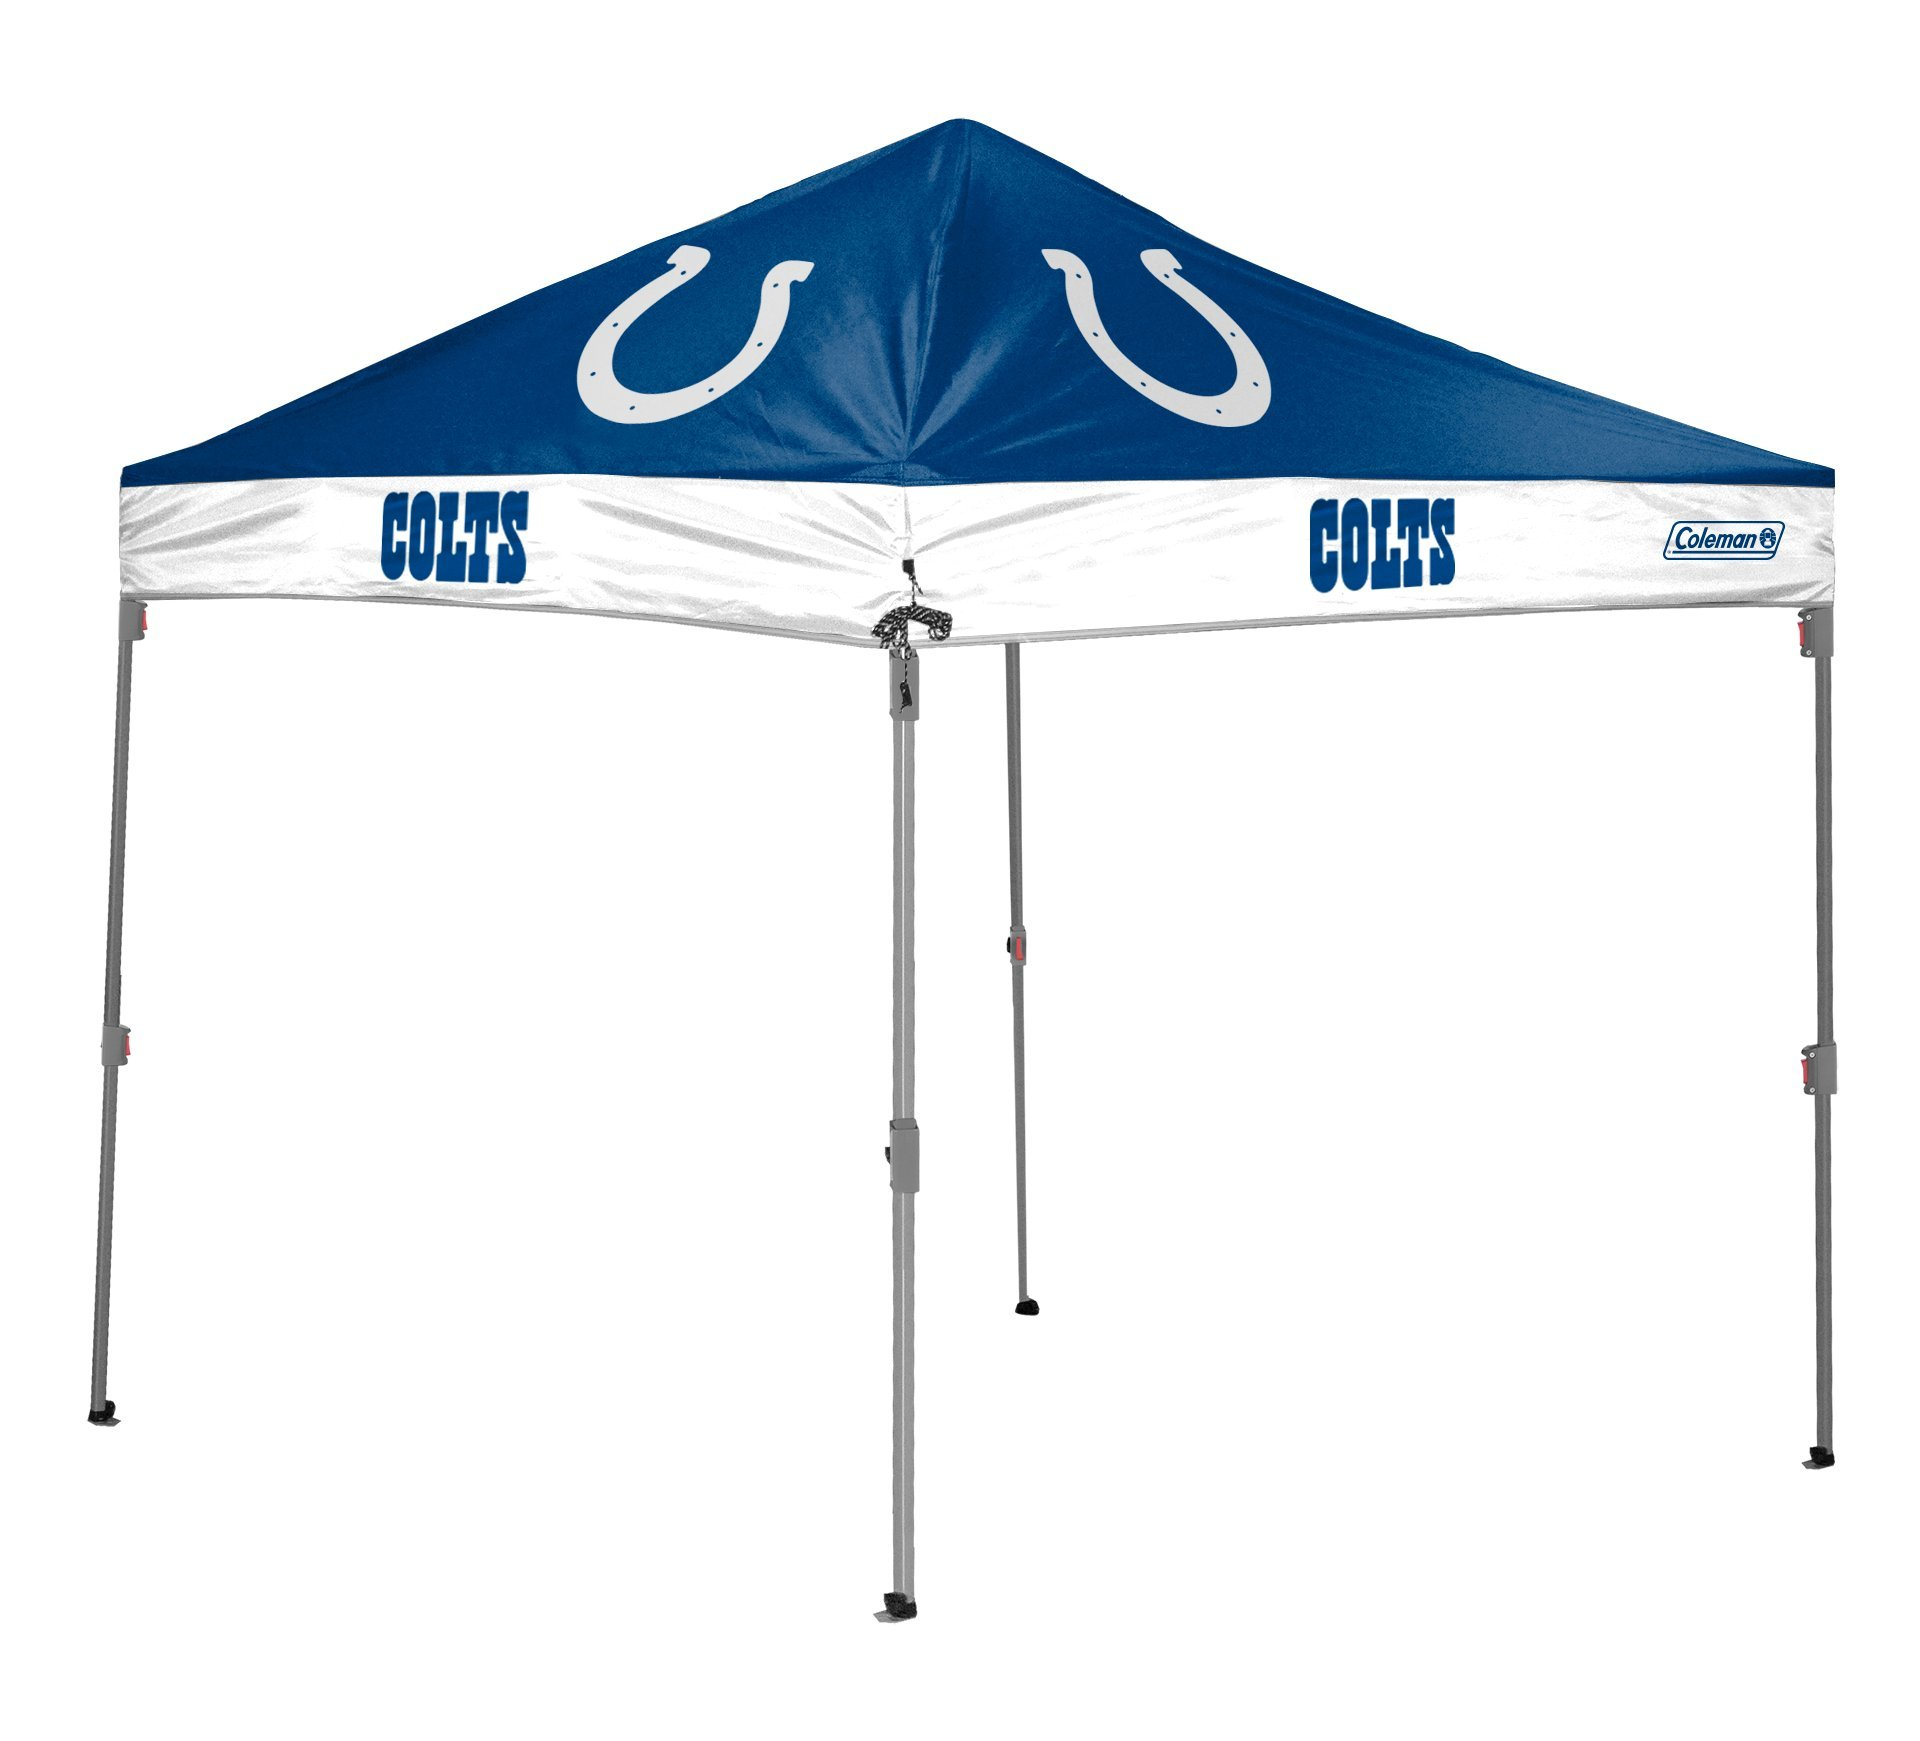 NFL Indianapolis Colts Straight Leg Canopy, 10 x 10, Blue